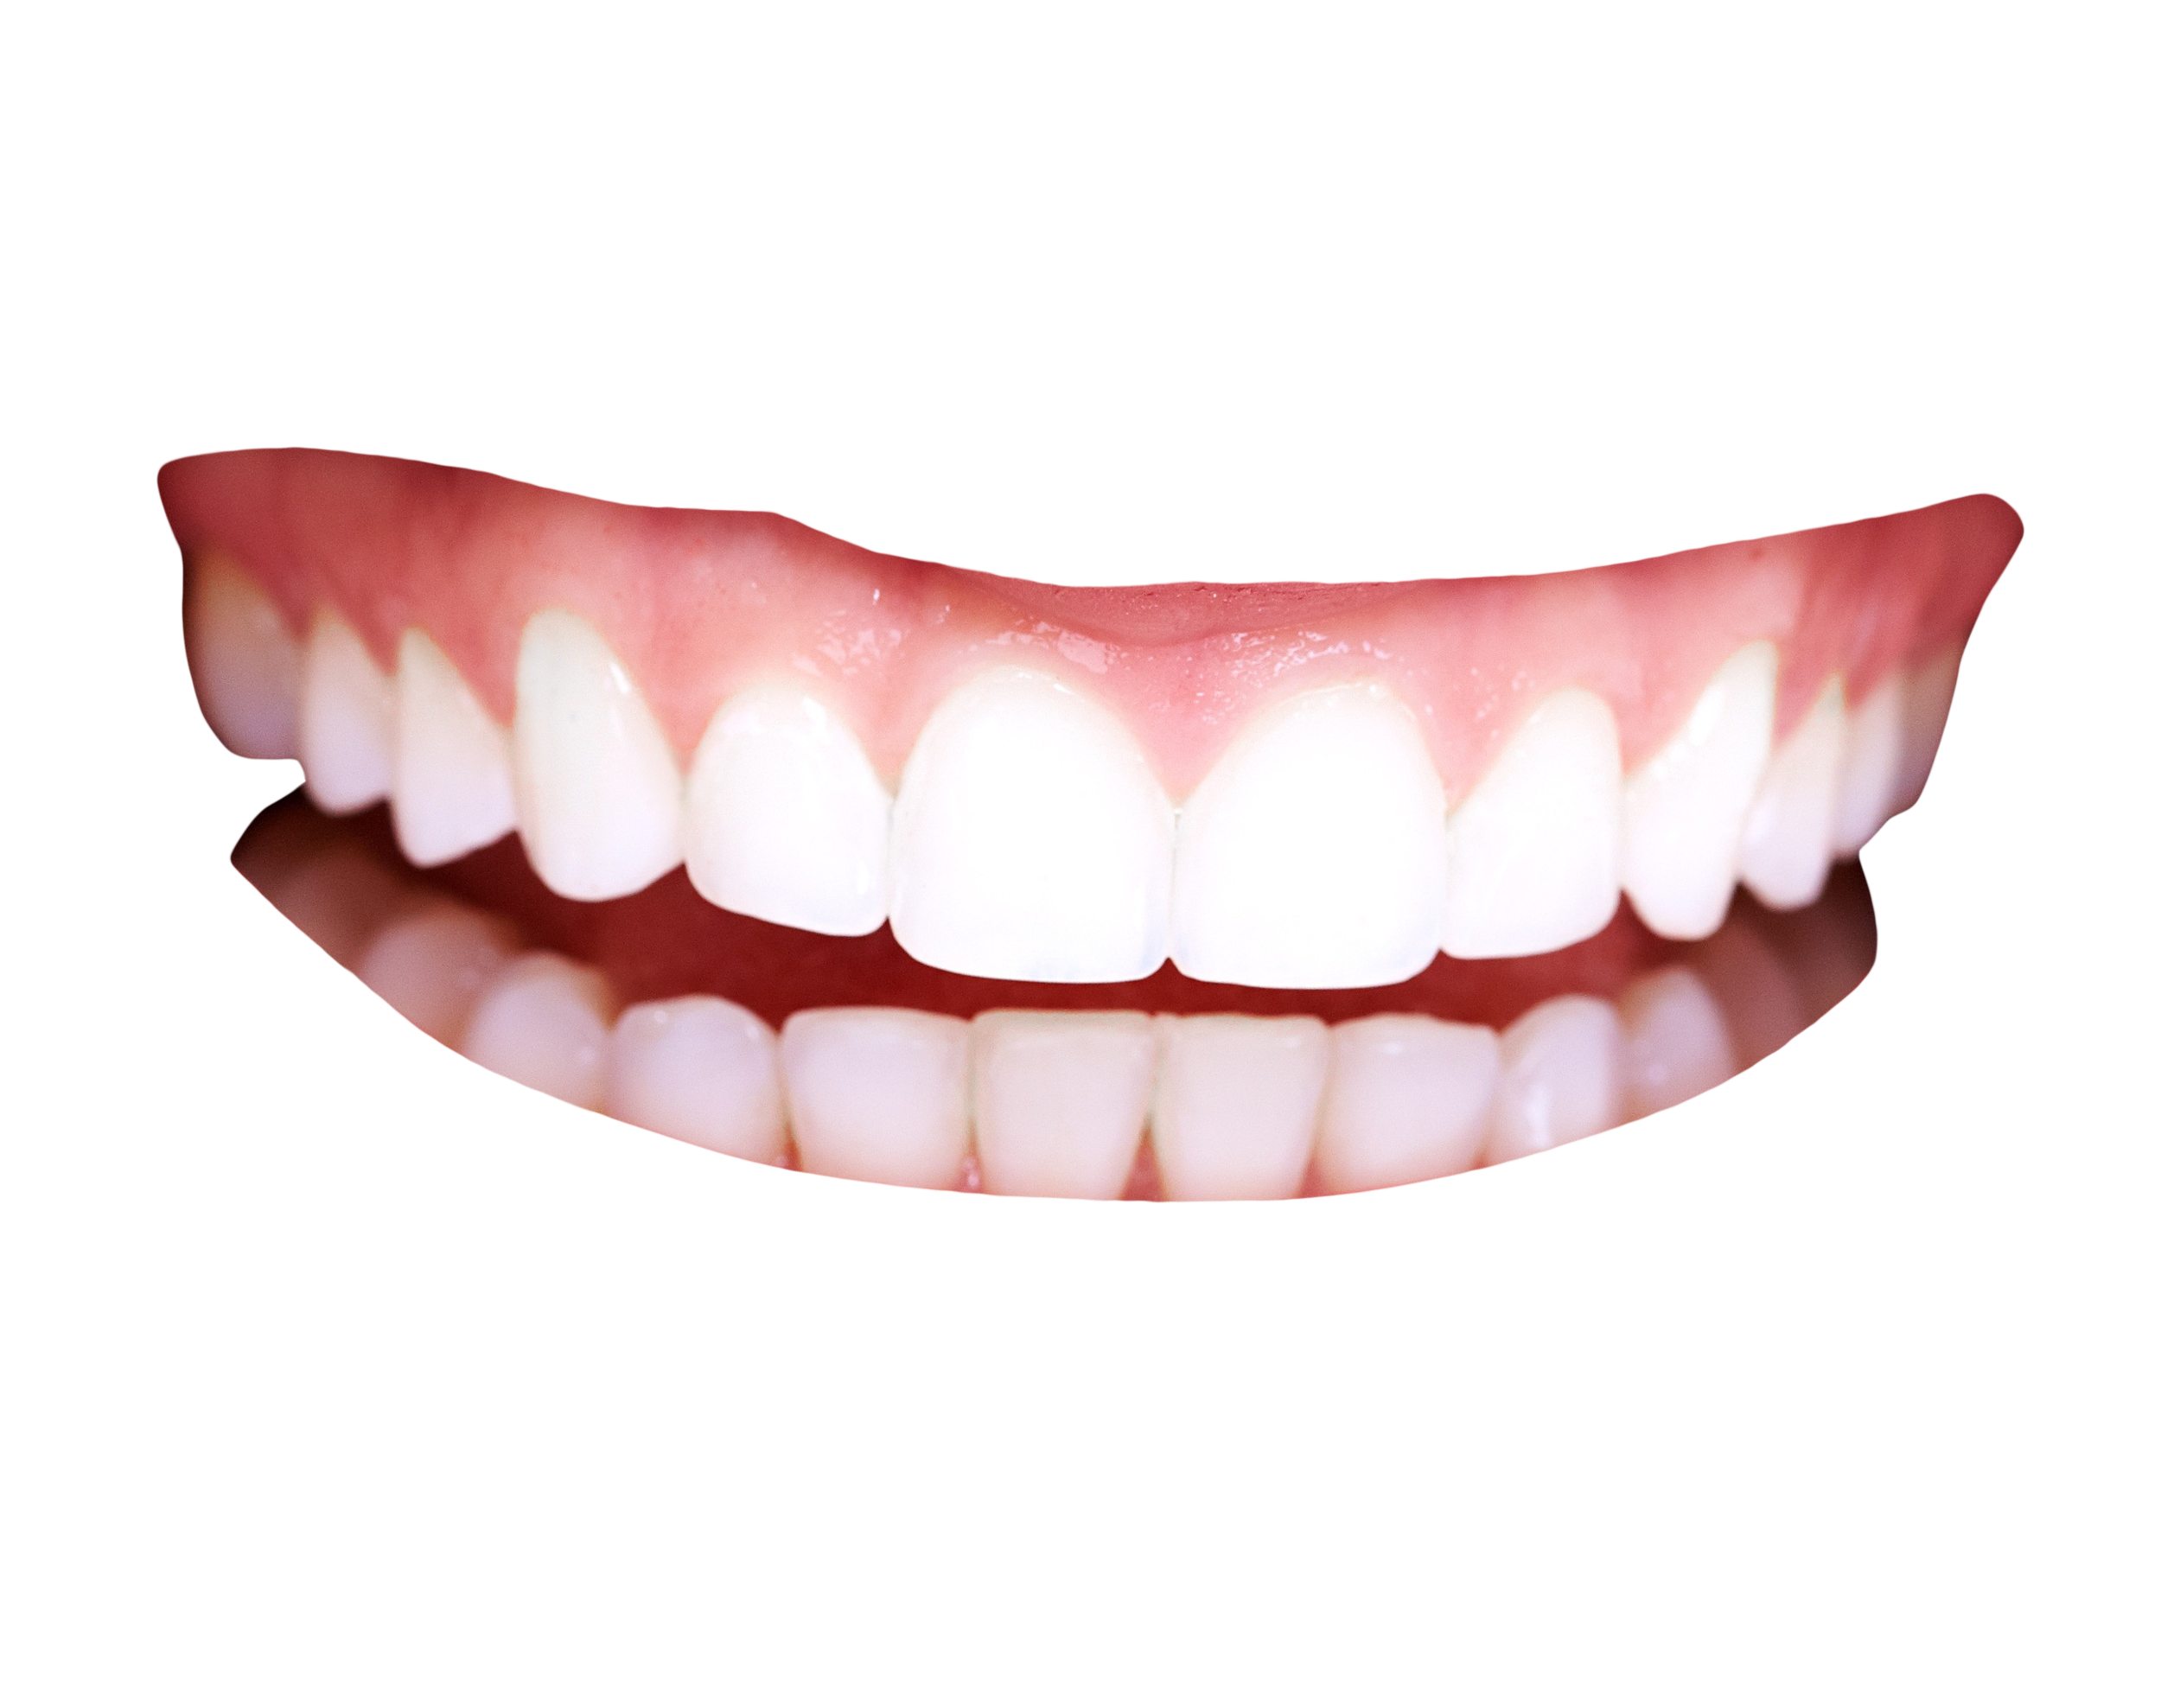 Teeth Smile PNG HD Transparent Teeth Smile HD.PNG Images.